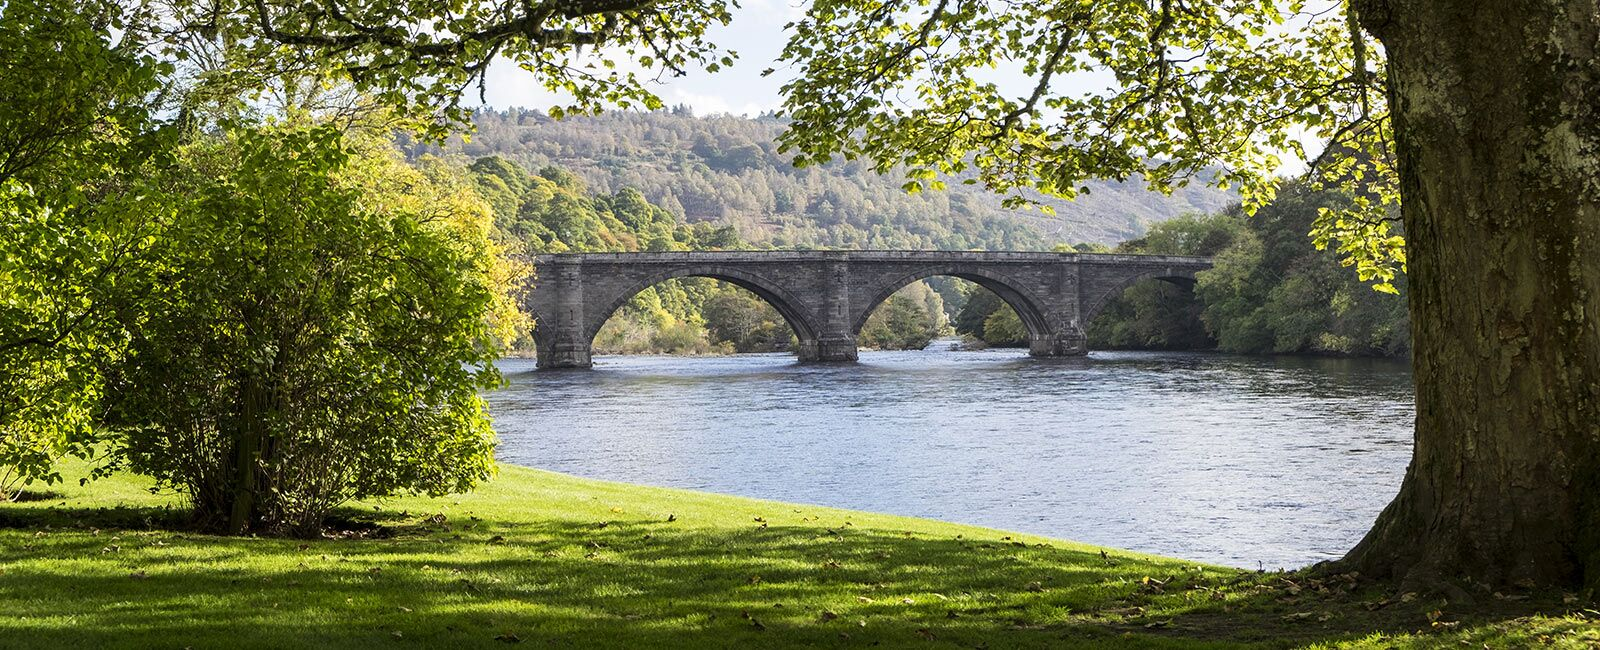 Enjoy the natural beauty of Scotland with Hilton Grand Vacations